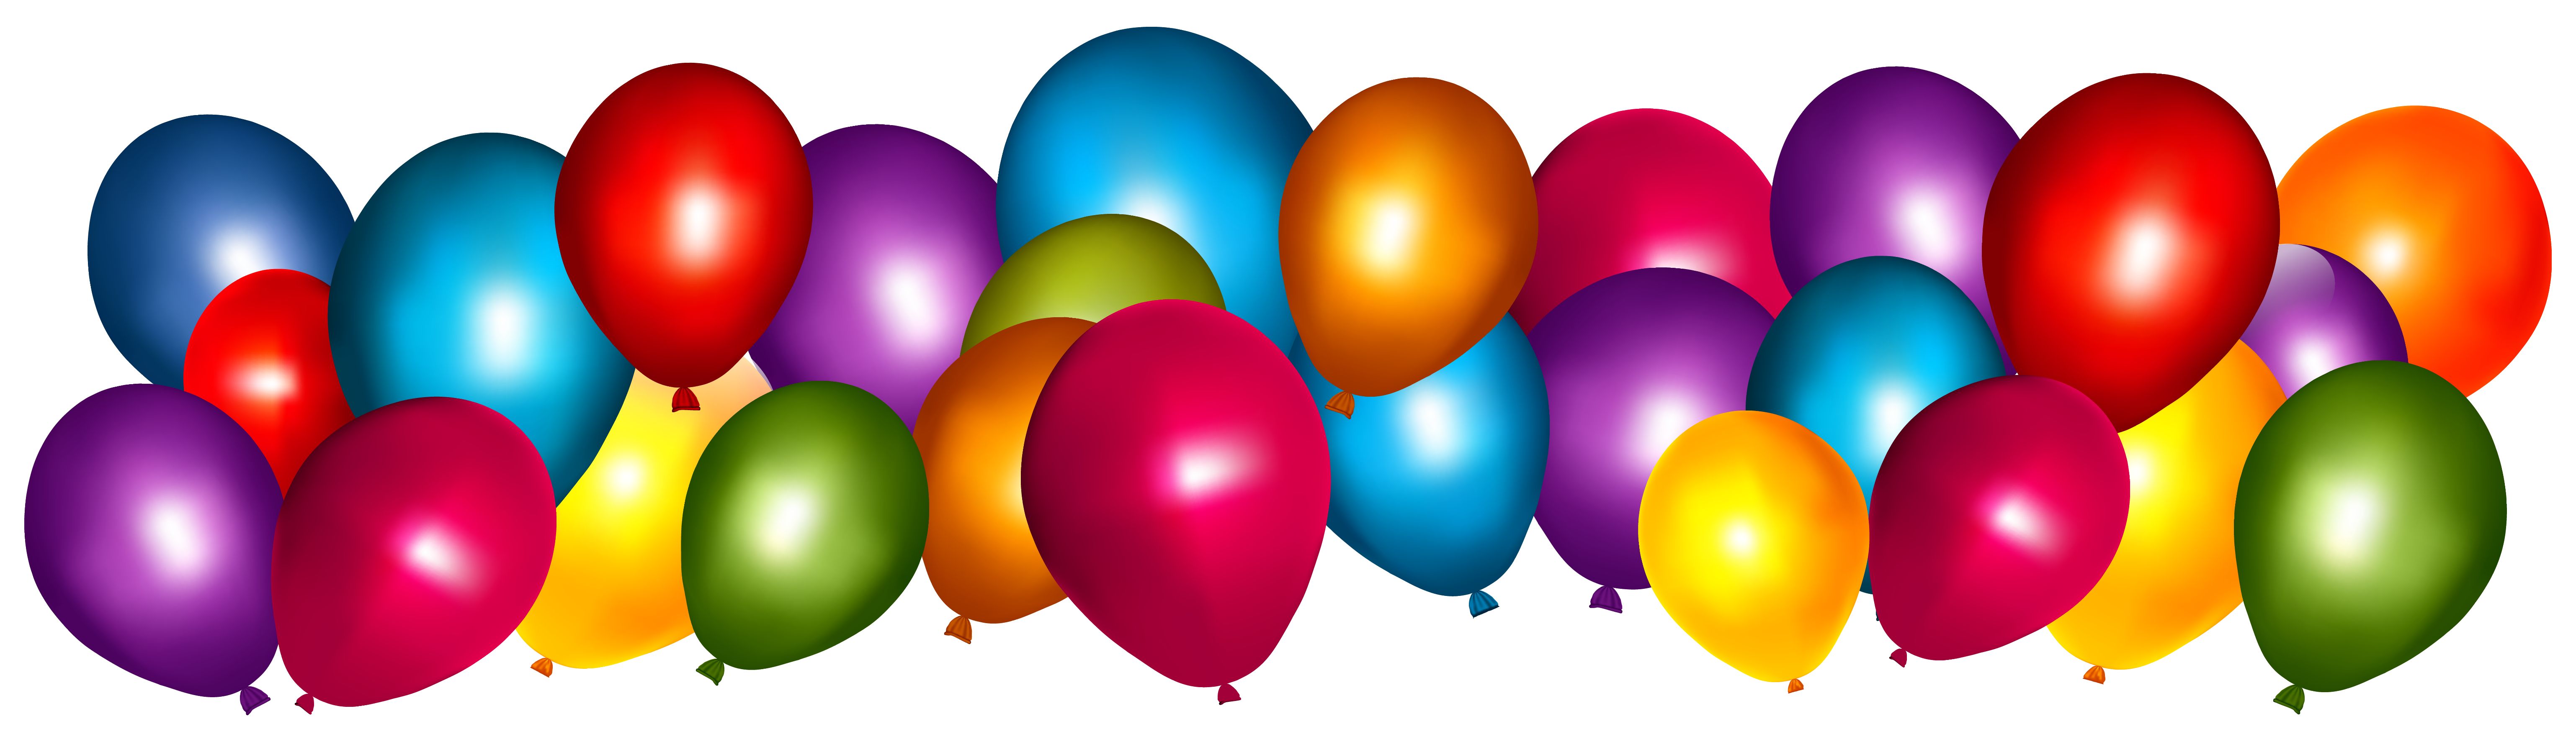 Clipart balloon easter. Transparent colorful balloons png